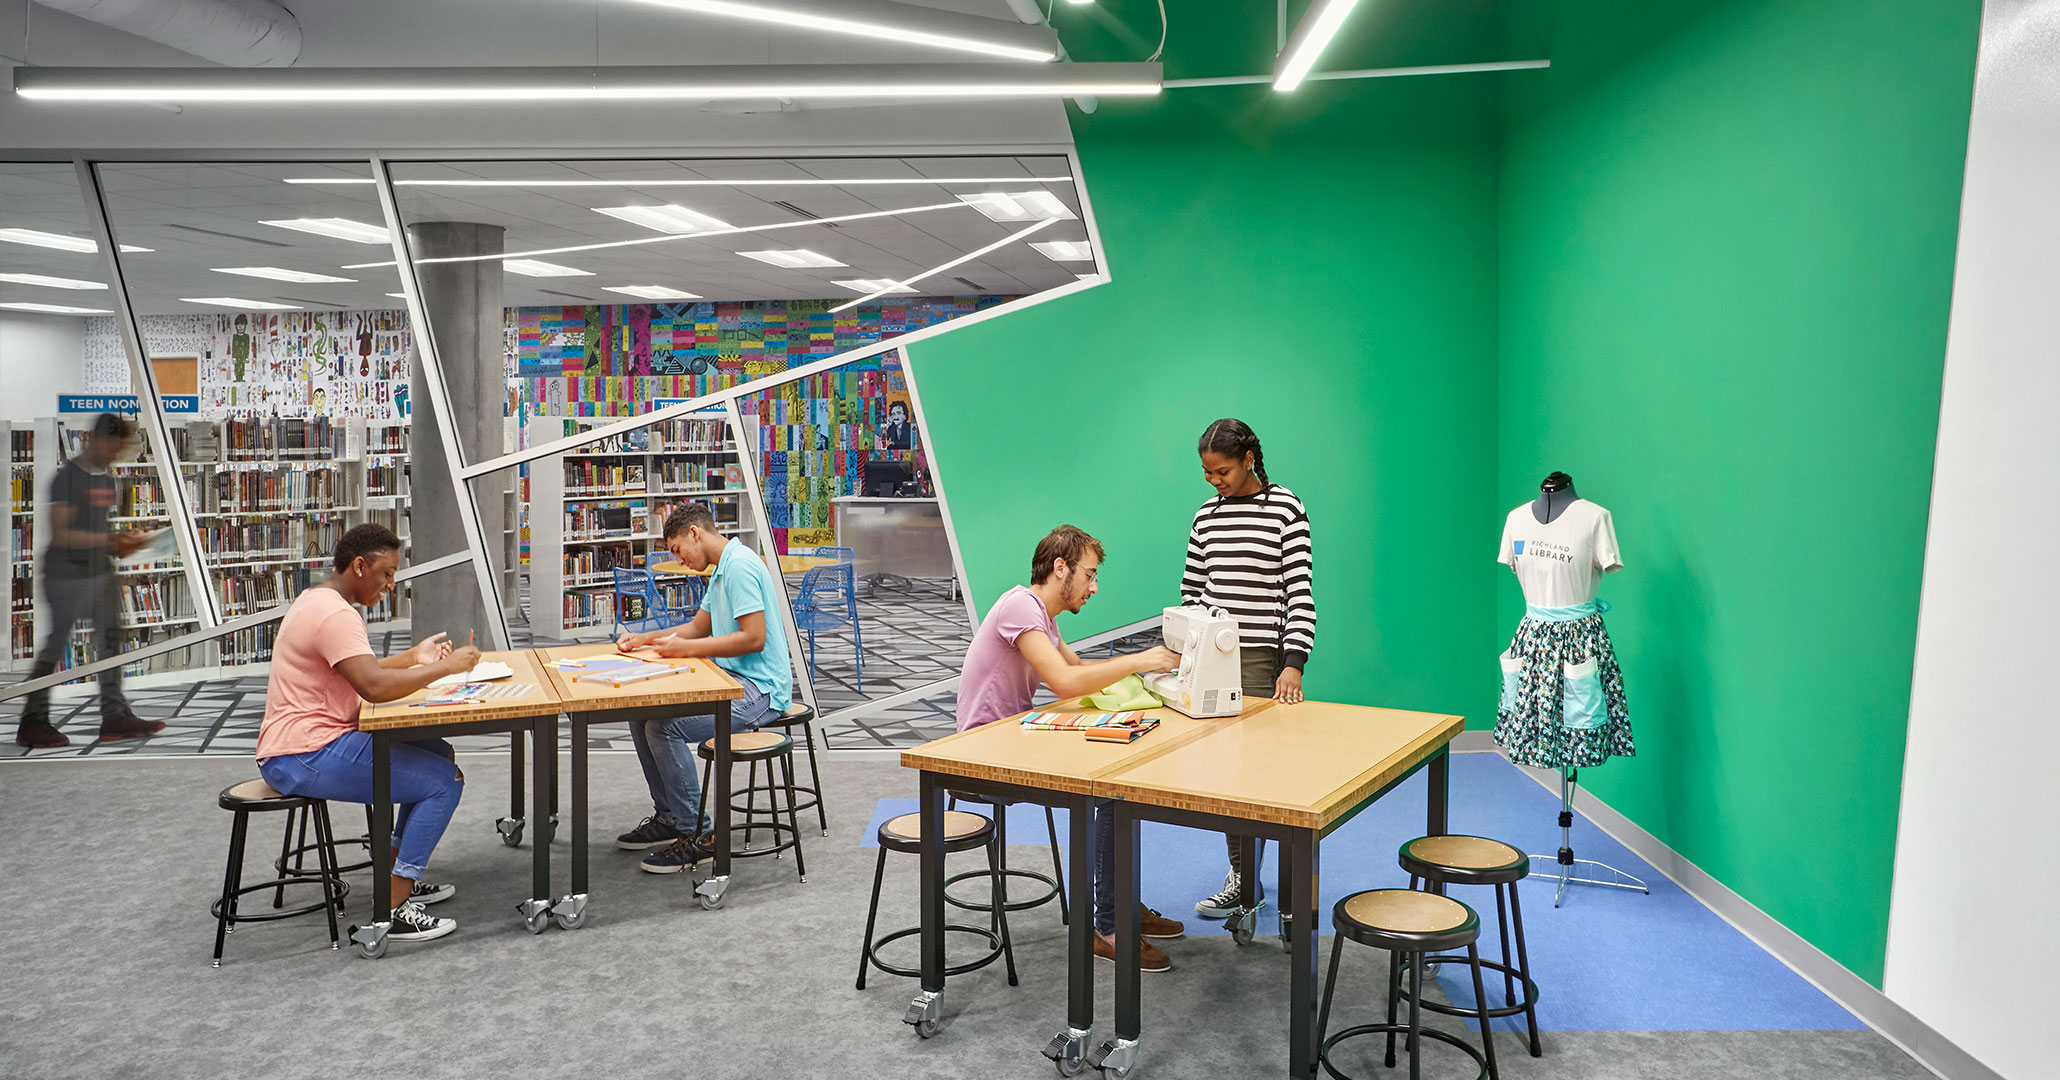 Richland County Library worked with Boudreaux to design DIY spaces for patrons.